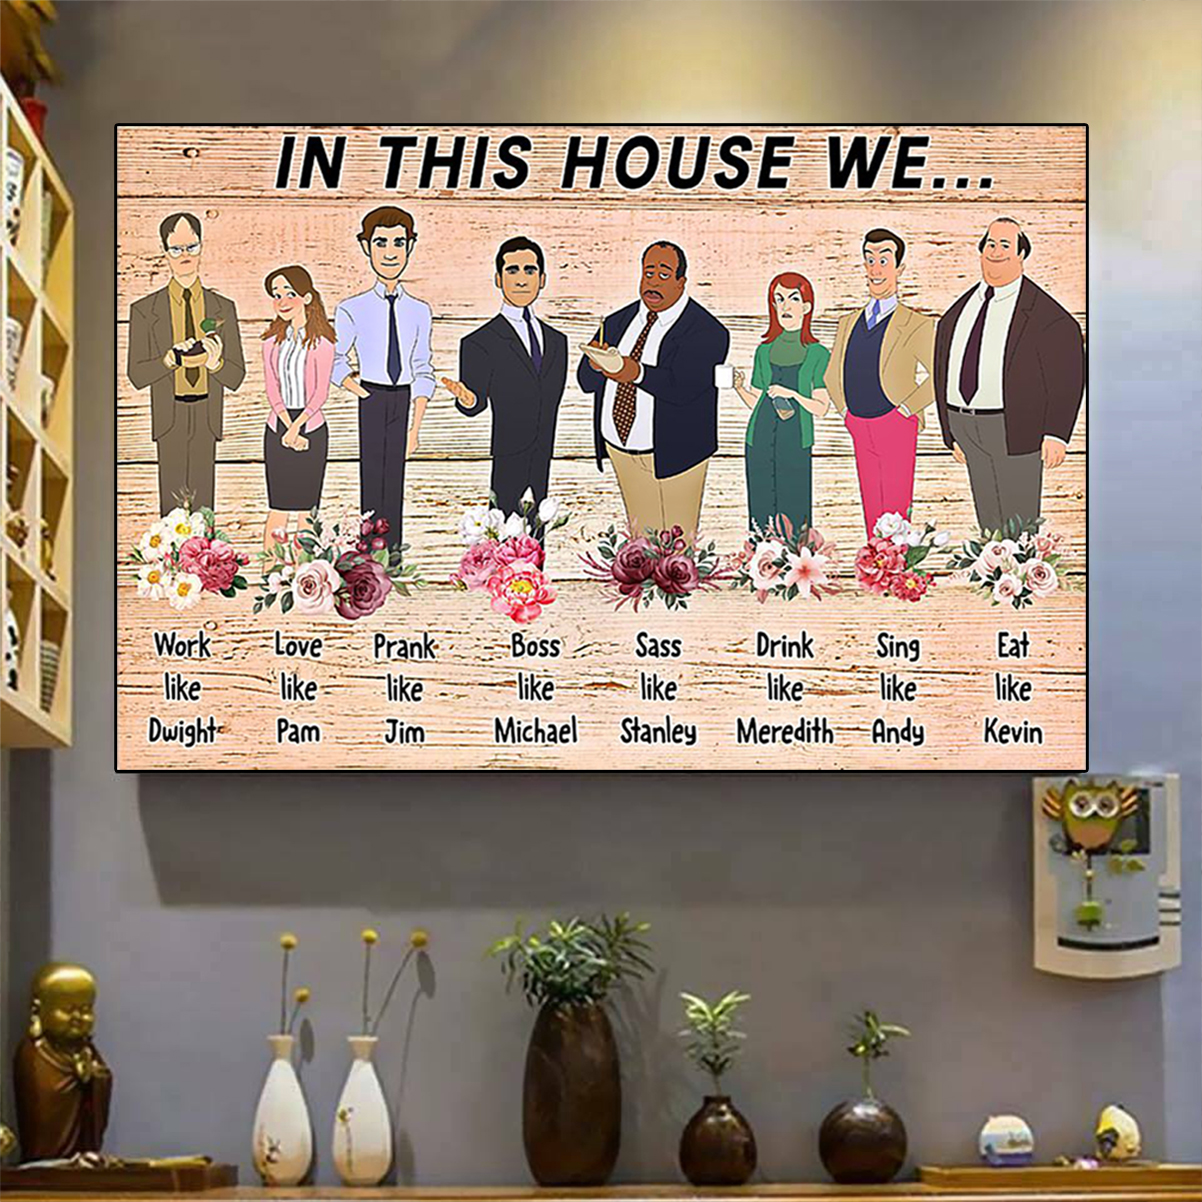 The office in this house we poster A3